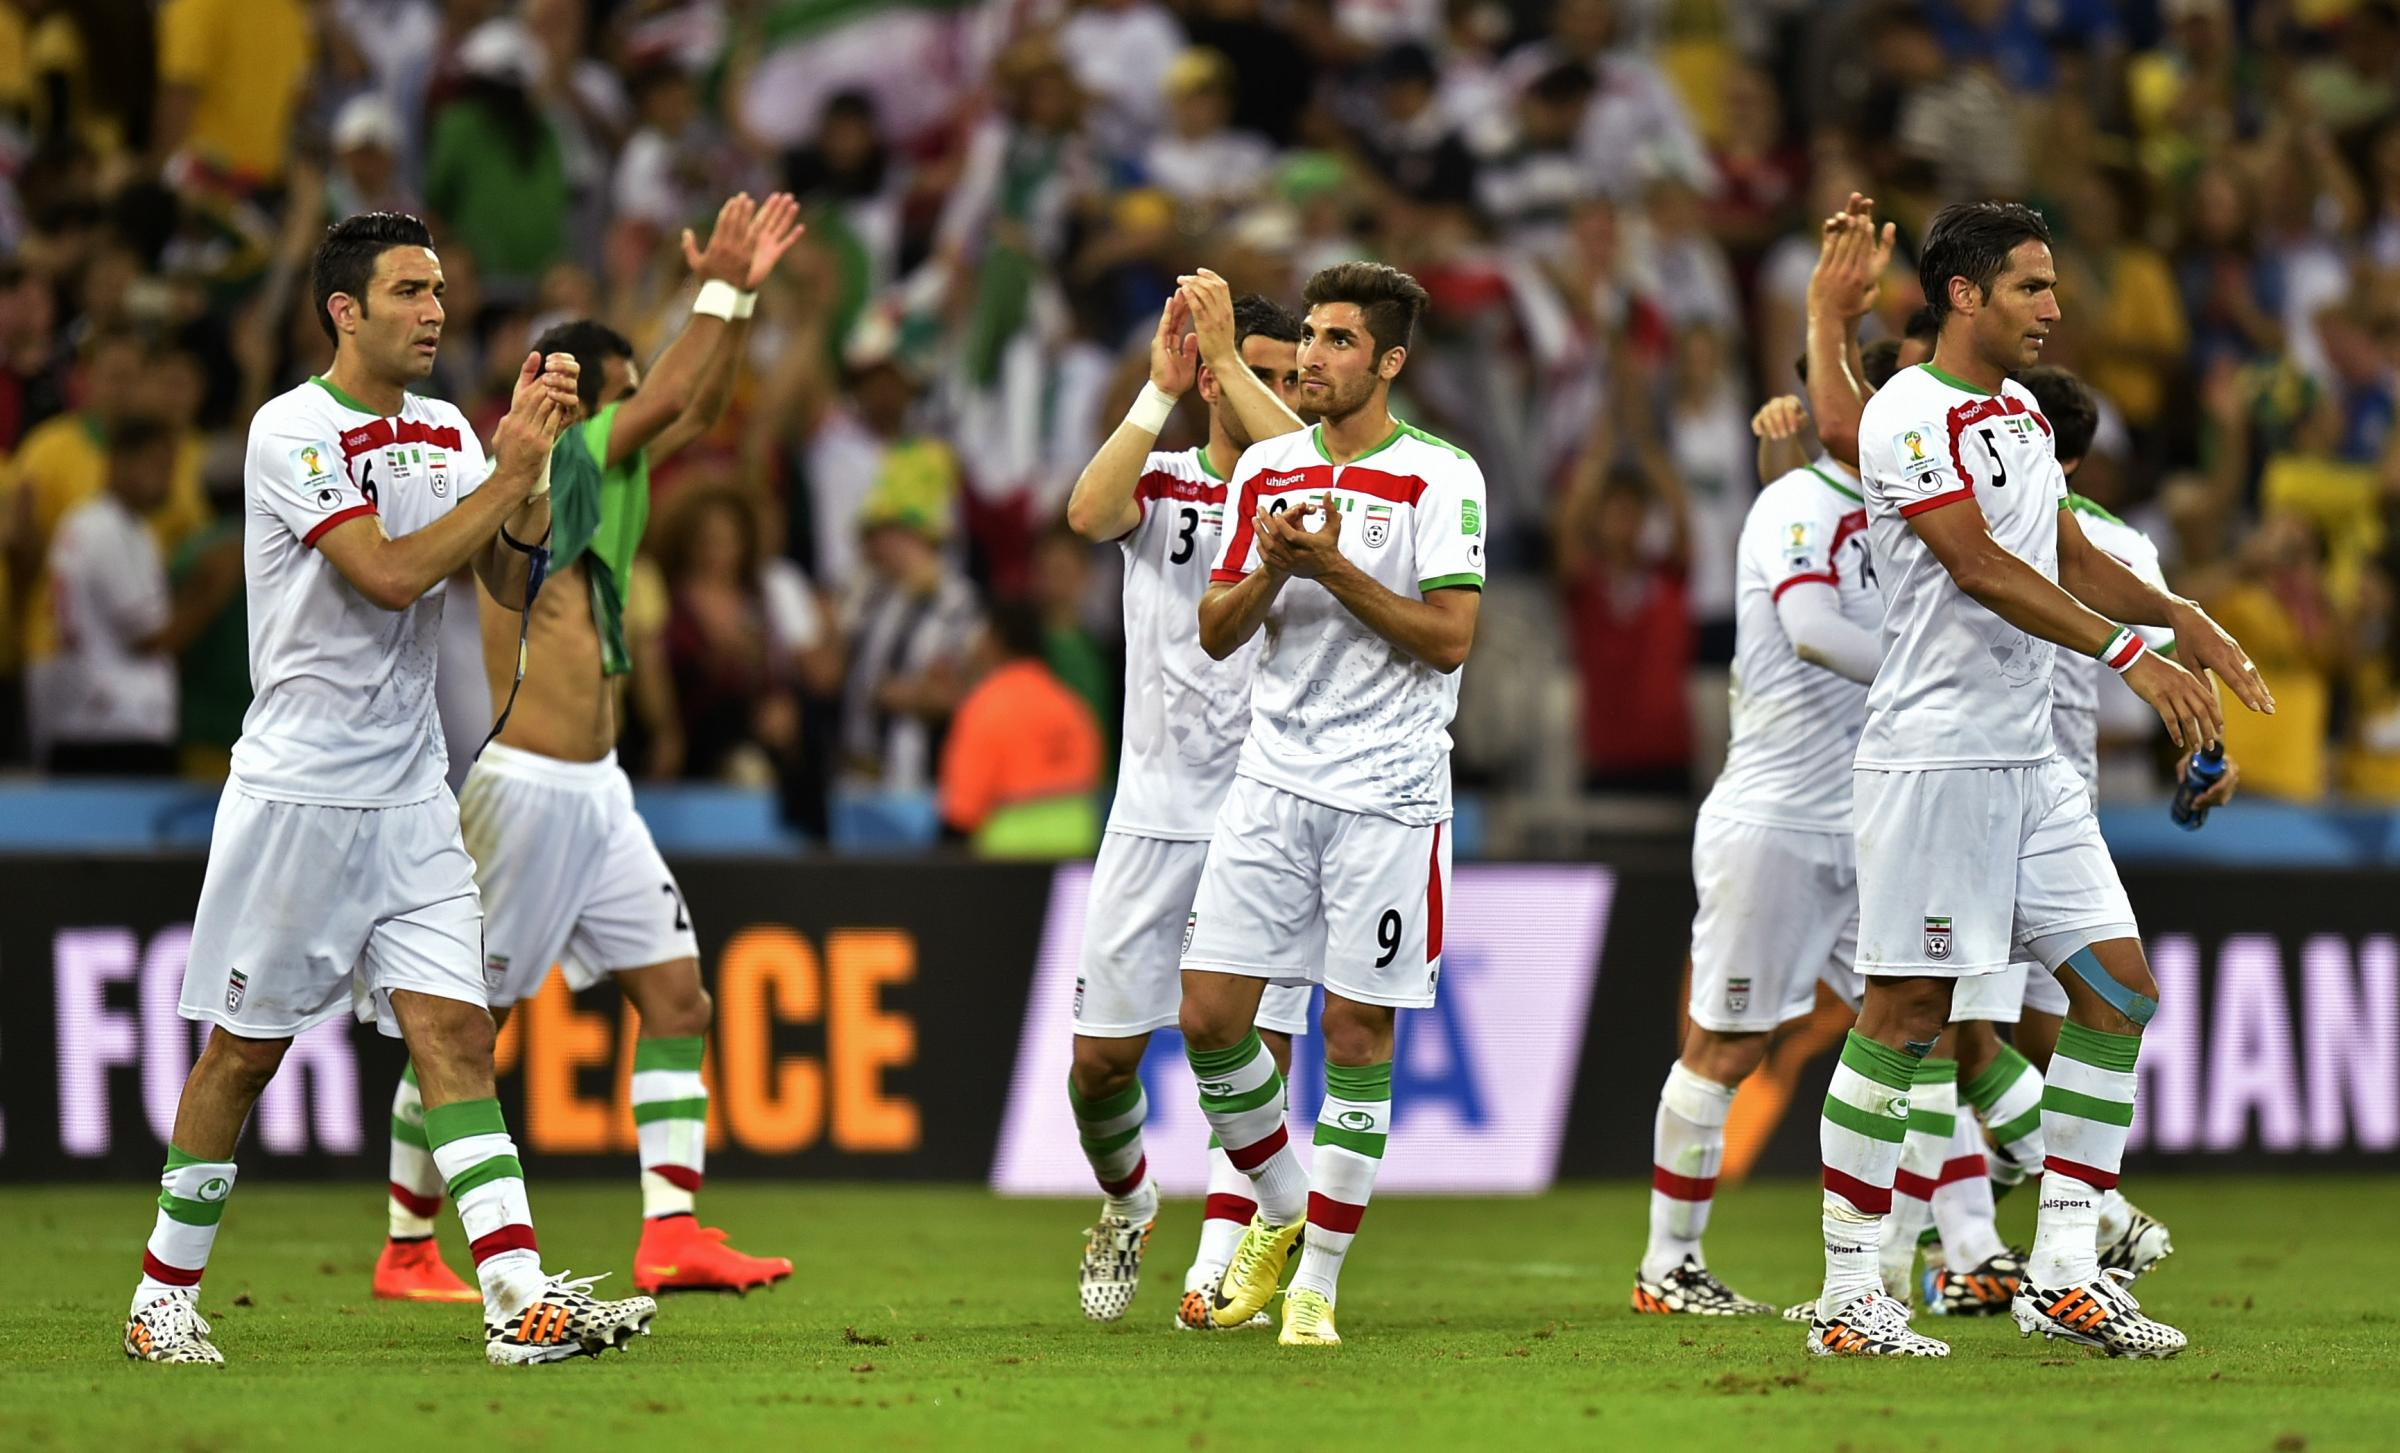 Iranian players applaud the crowd after the group F World Cup soccer match between Iran and Nigeria at the Arena da Baixada in Curitiba, Brazil